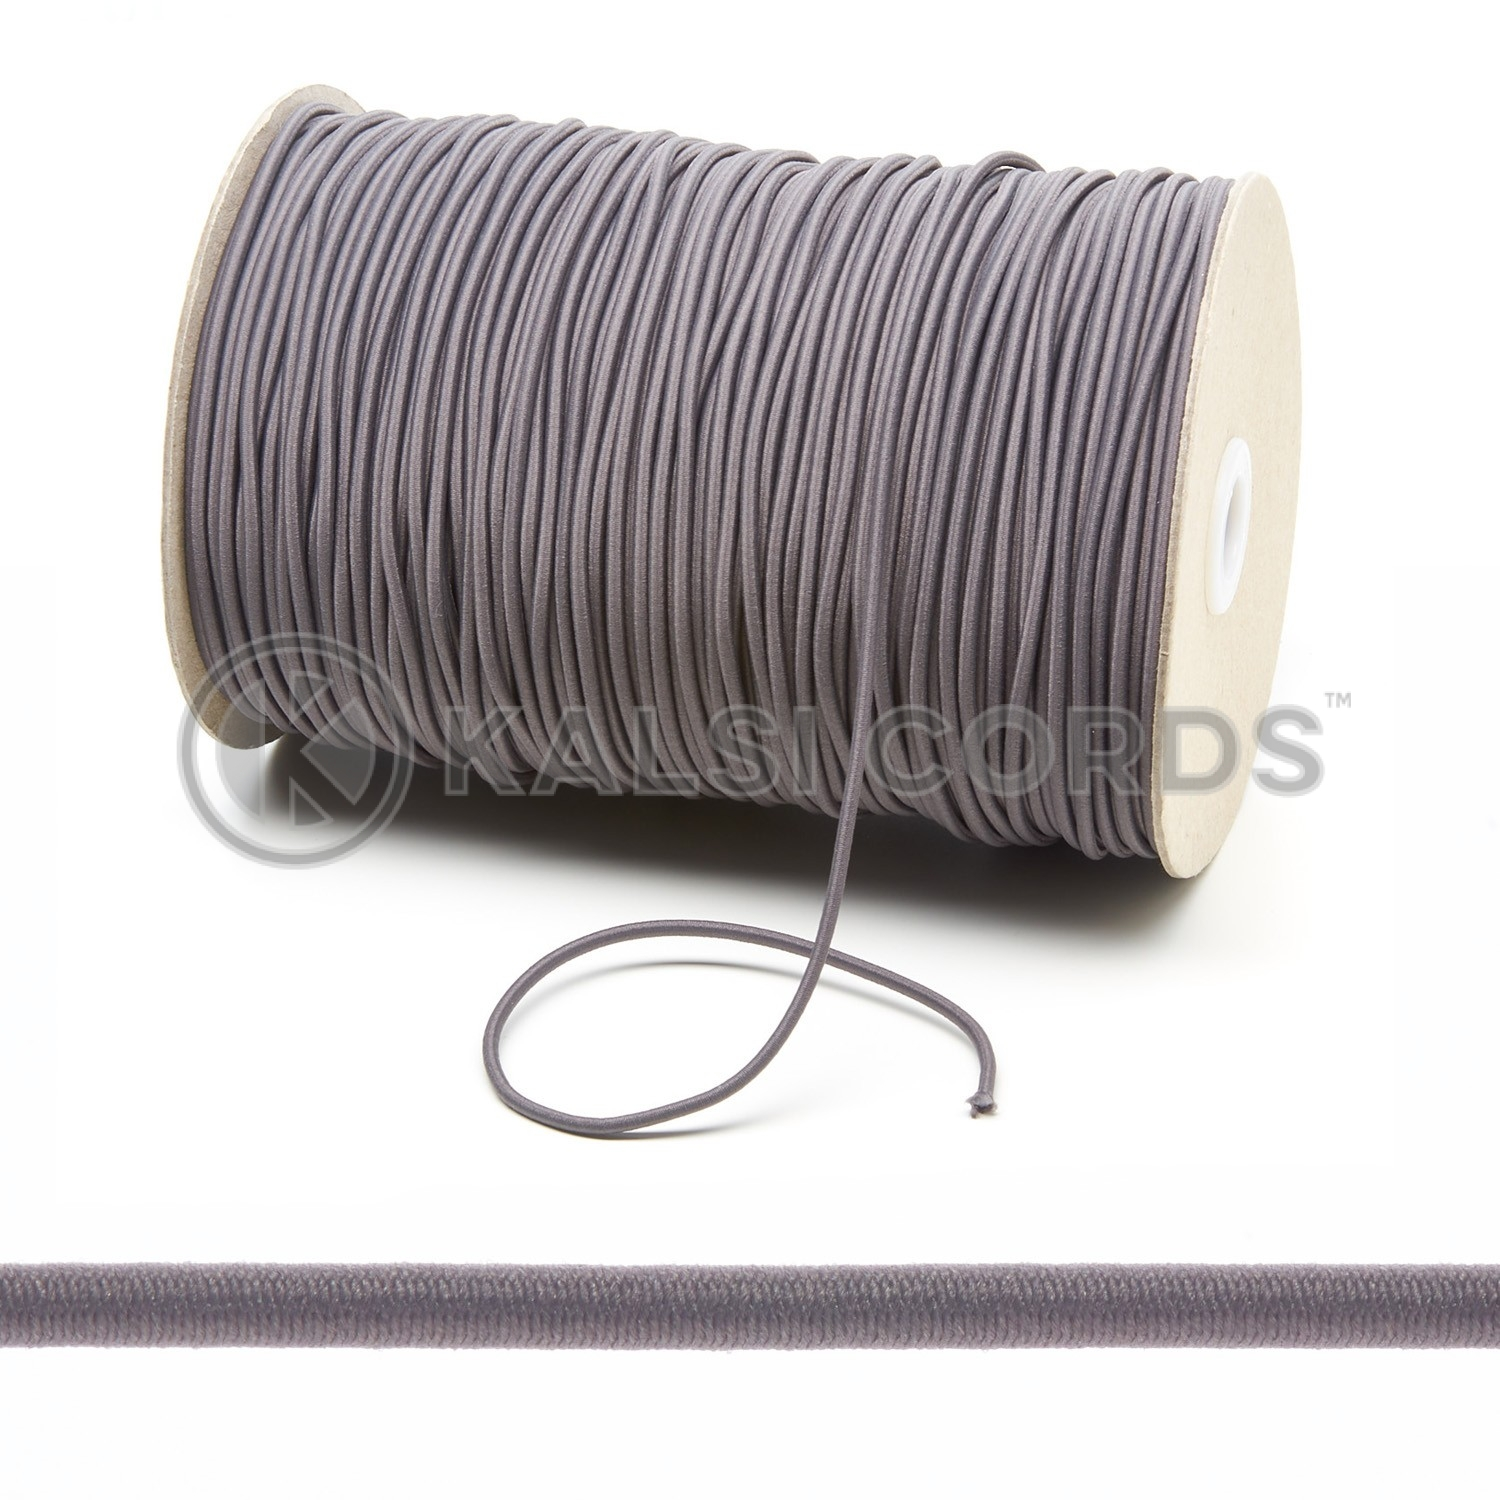 3mm Grey Thin Fine Round Elastic Cord Kalsi Cords